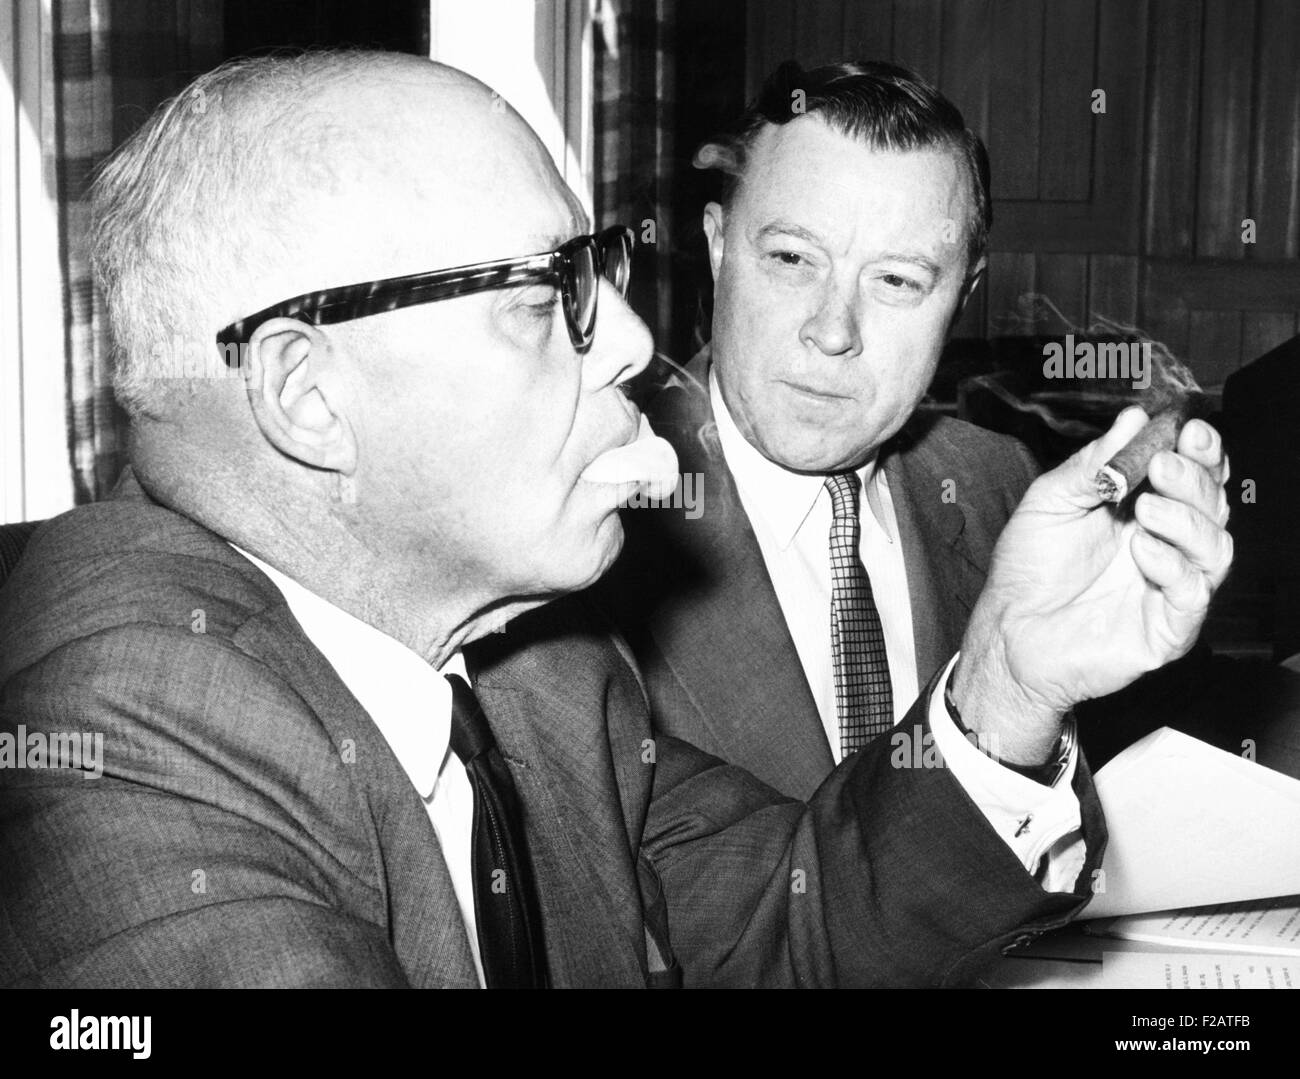 AFL-CIO leaders, George Meany, and Walter Reuther endorsed John Kennedy for President. Aug. 26, 1960 (CSU_2015_11 - Stock Image